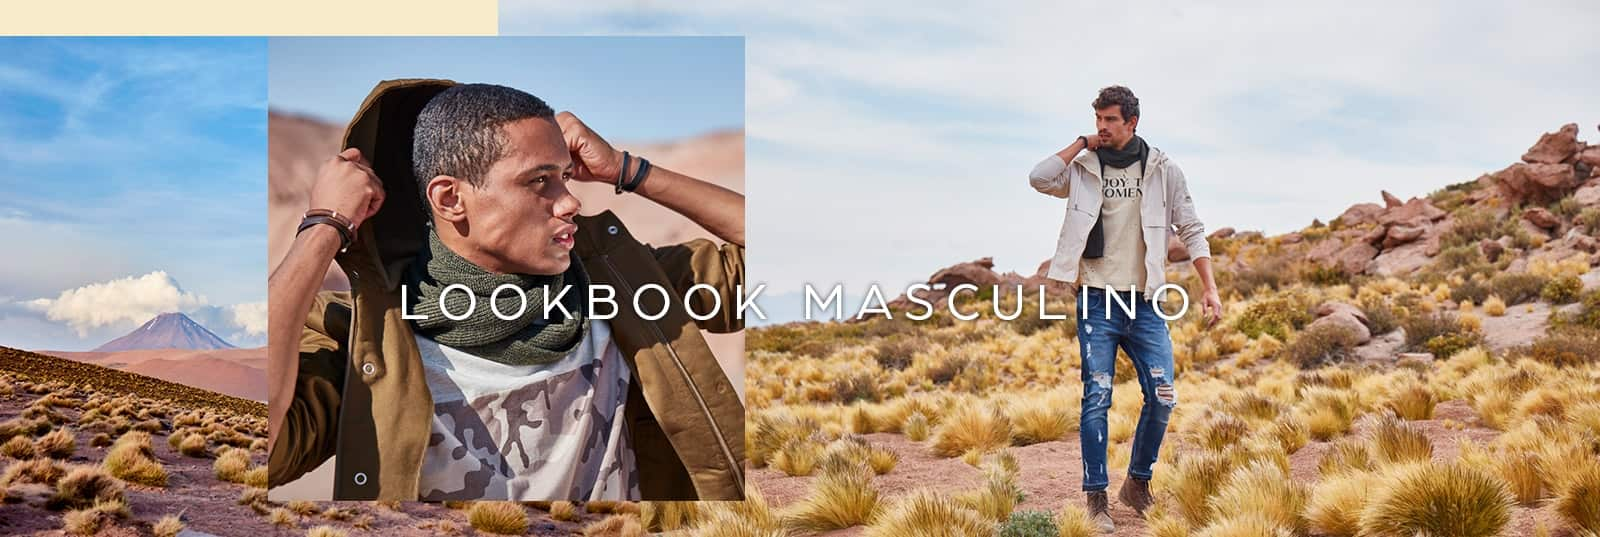 Lookbook masculino